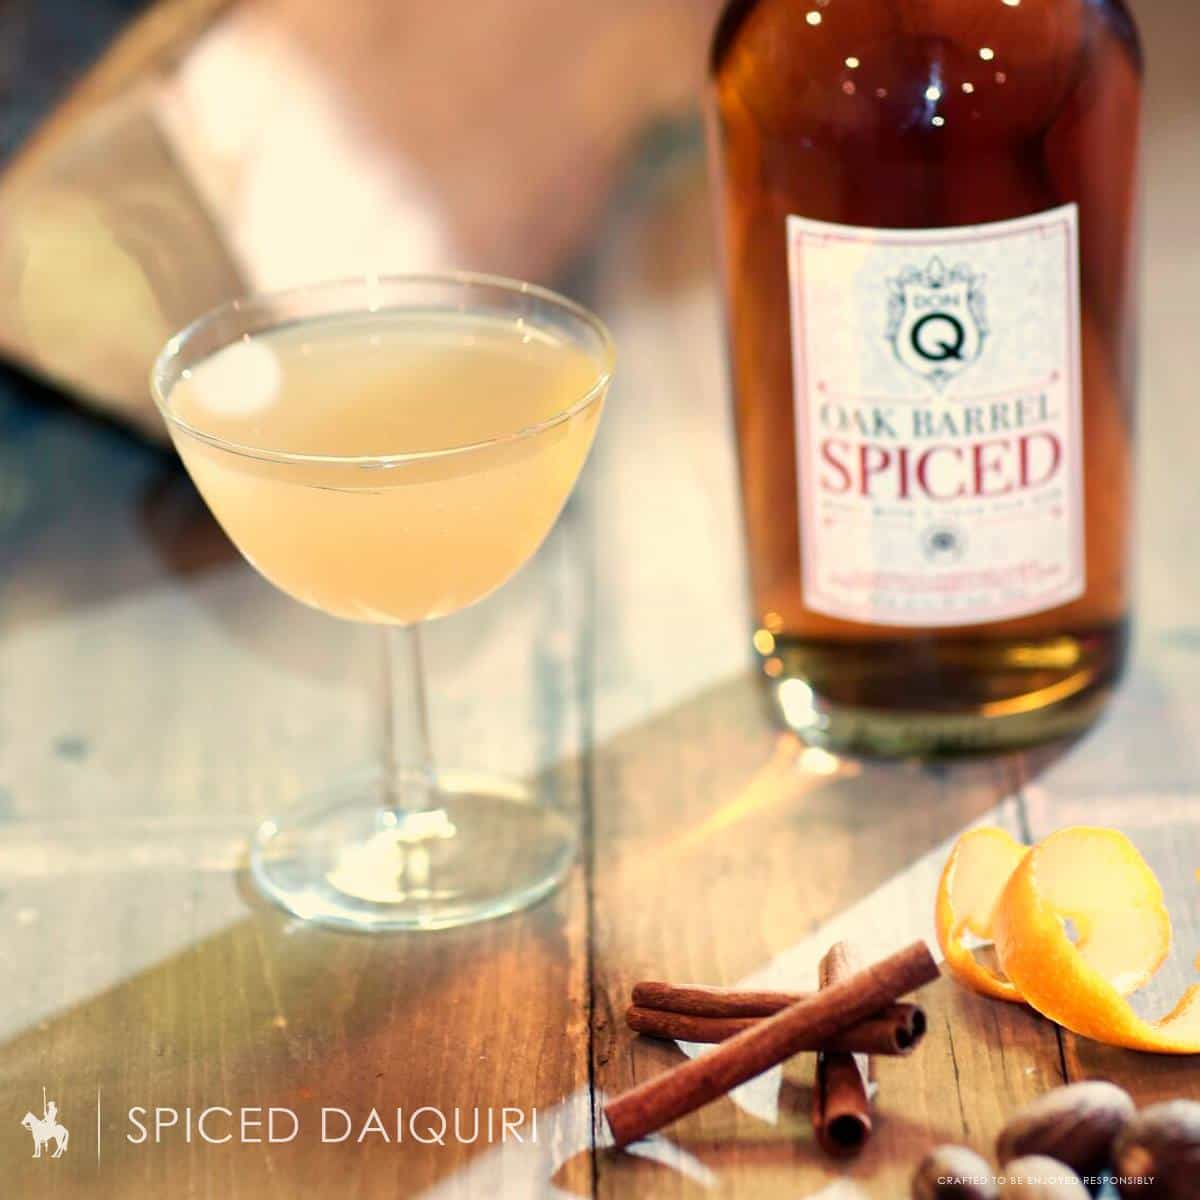 Kick up your Daiquiri a notch with Don Q Oak Barrel Spiced rum. TravelingWellForLess.com